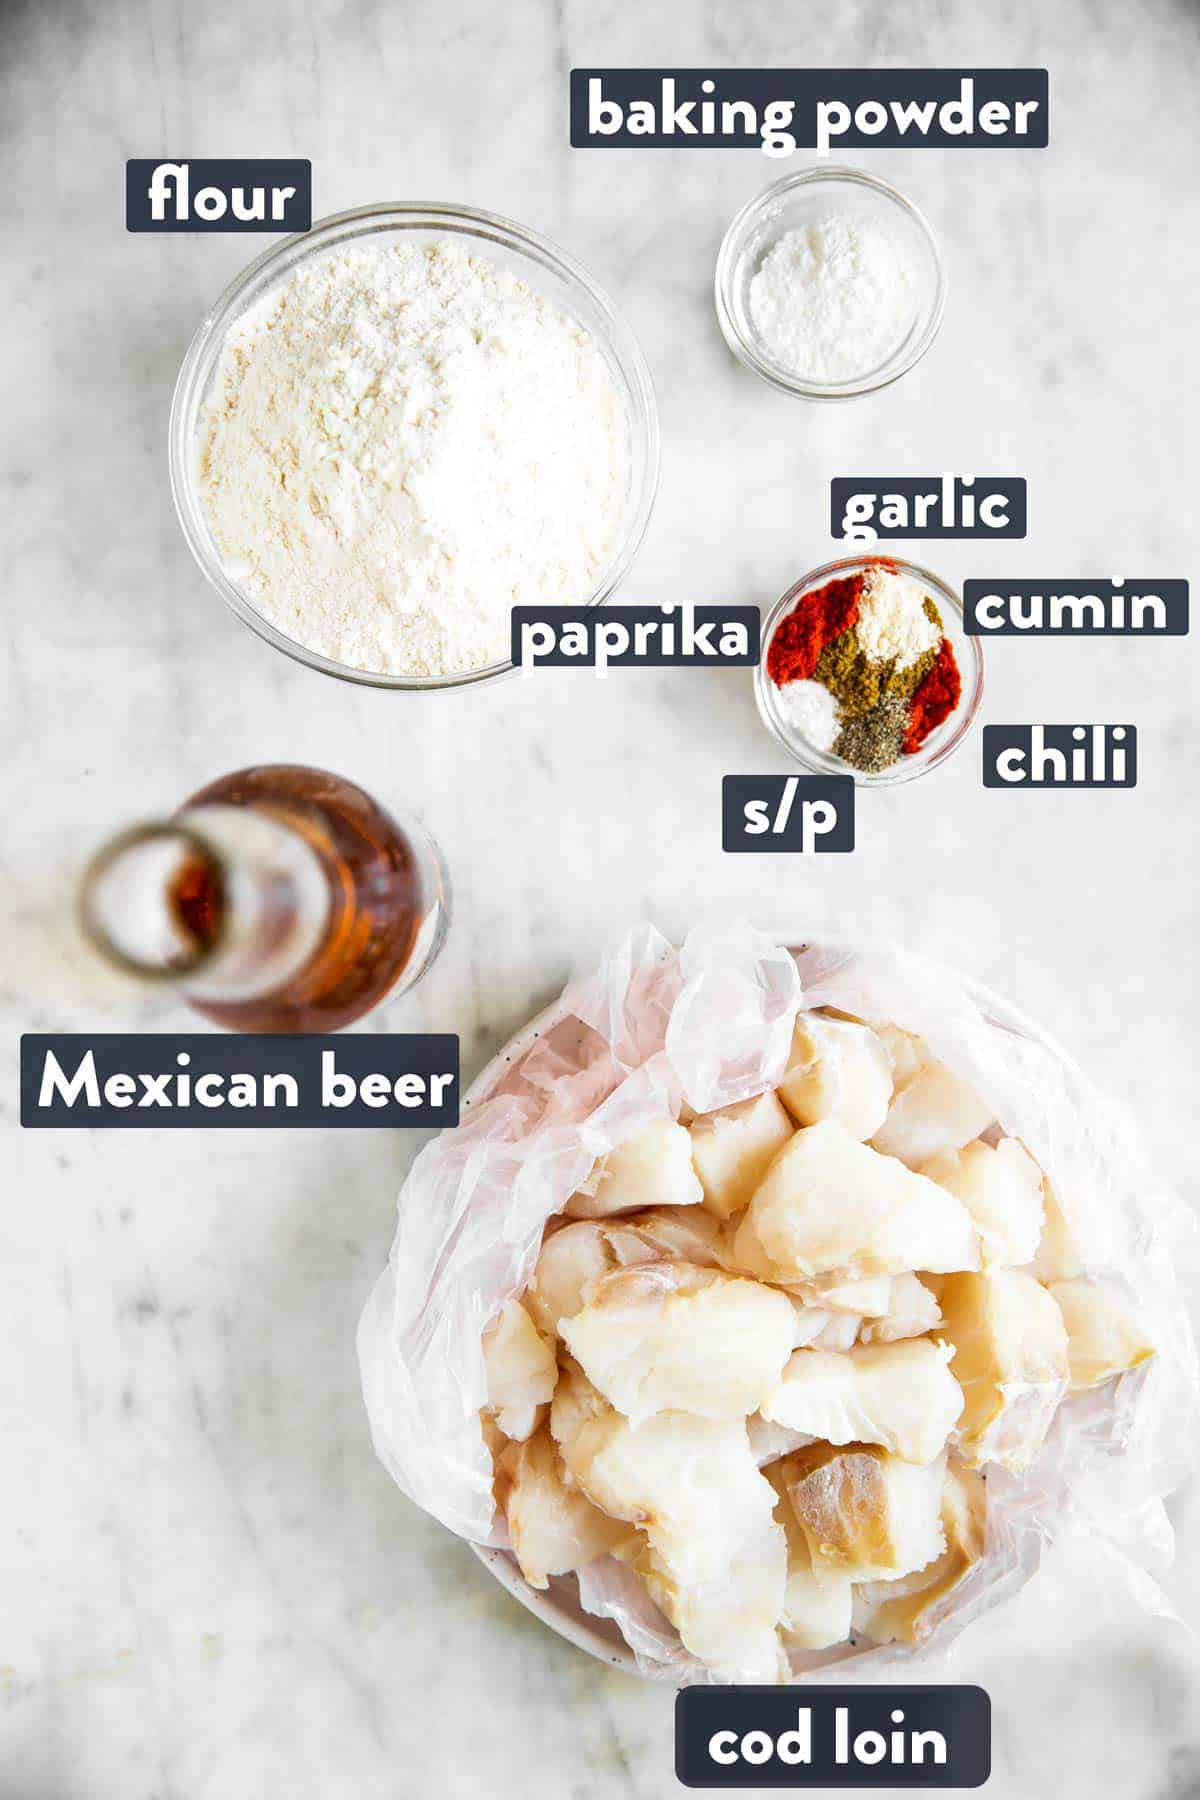 ingredients for fried fish to make Baja fish tacos with text labels